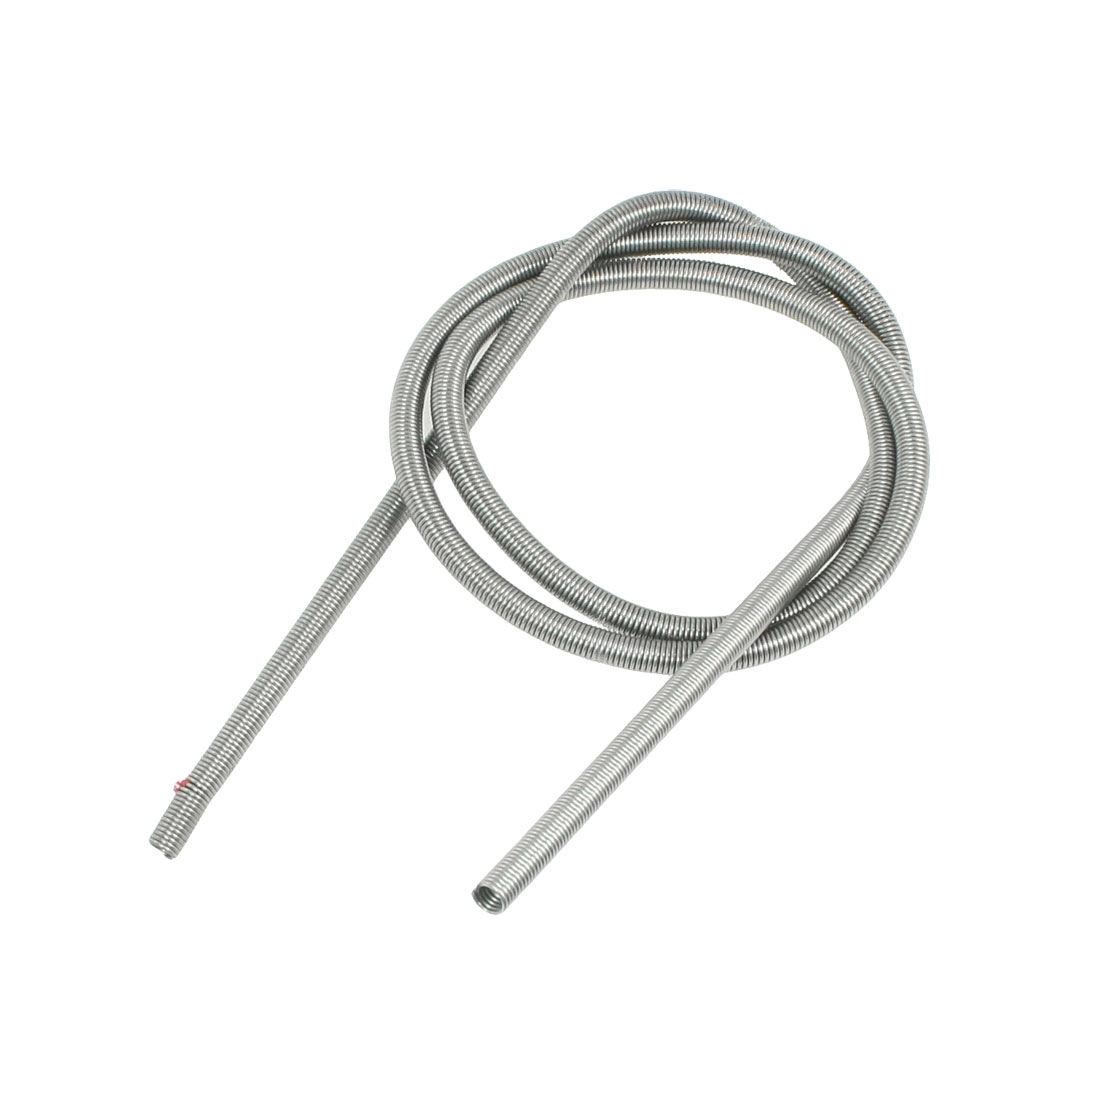 795mmx5.5mm Forging Pottery Heating Element Wire Coil 3KW 220V